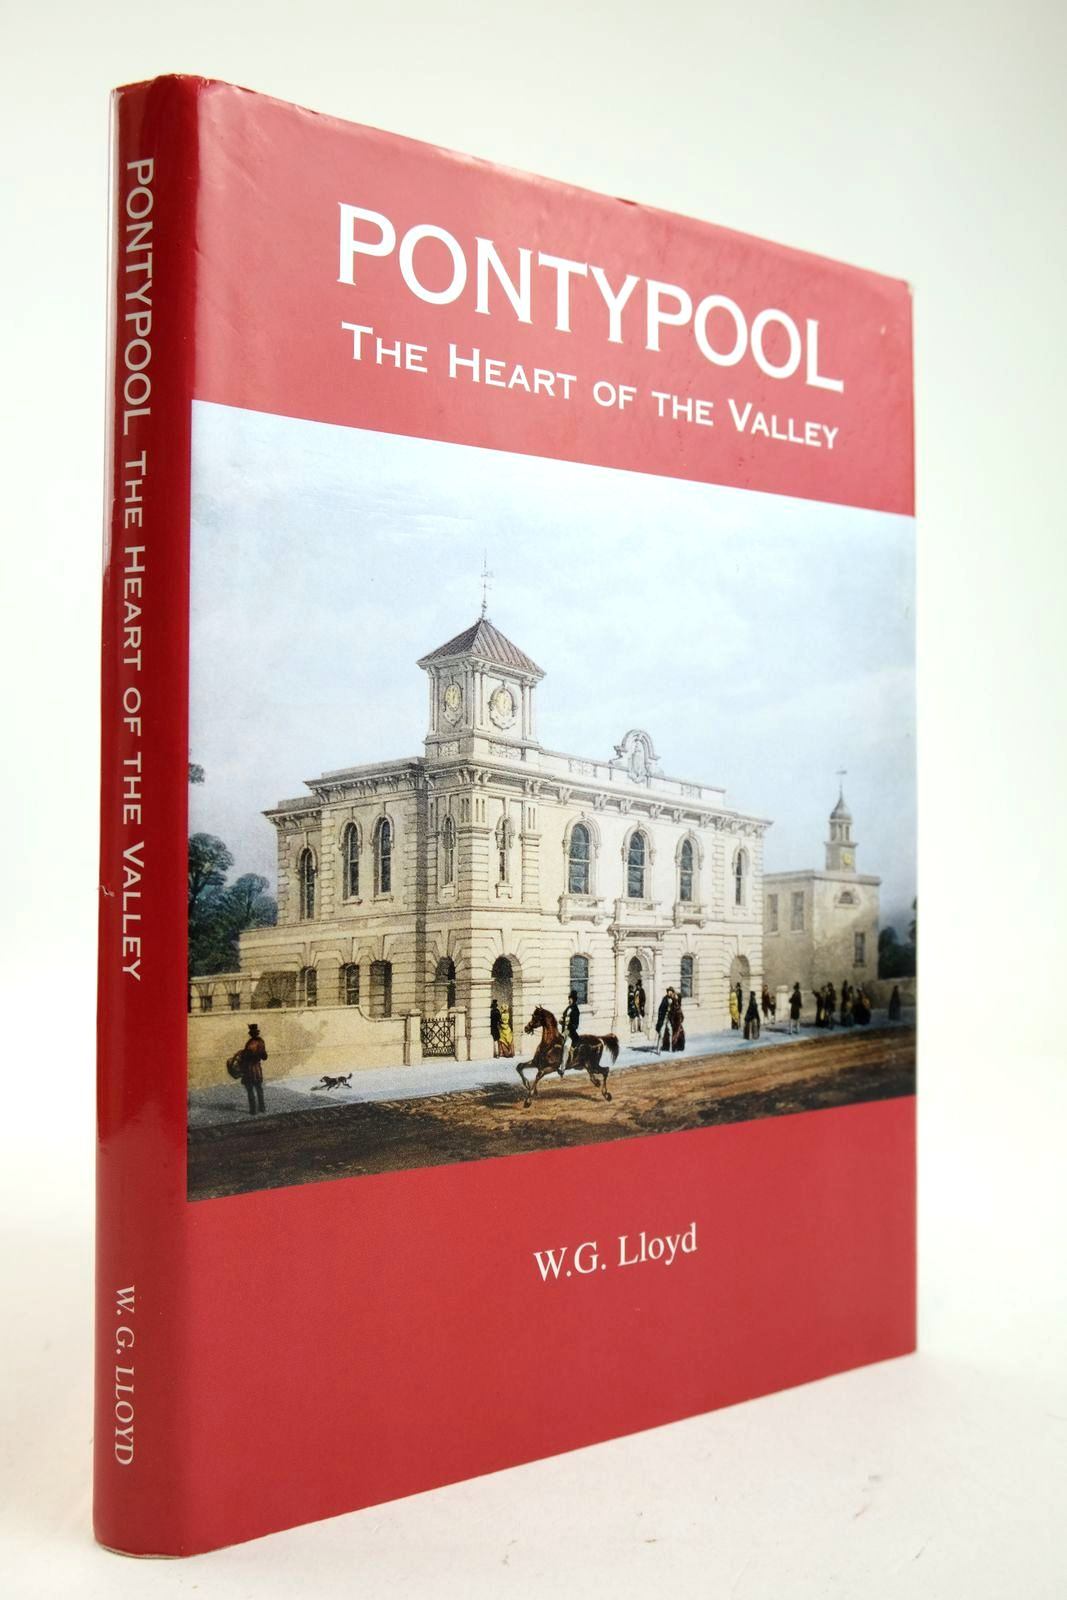 Photo of PONTYPOOL THE HEART OF THE VALLEY written by Lloyd, W.G. published by W.G. Lloyd (STOCK CODE: 2132878)  for sale by Stella & Rose's Books